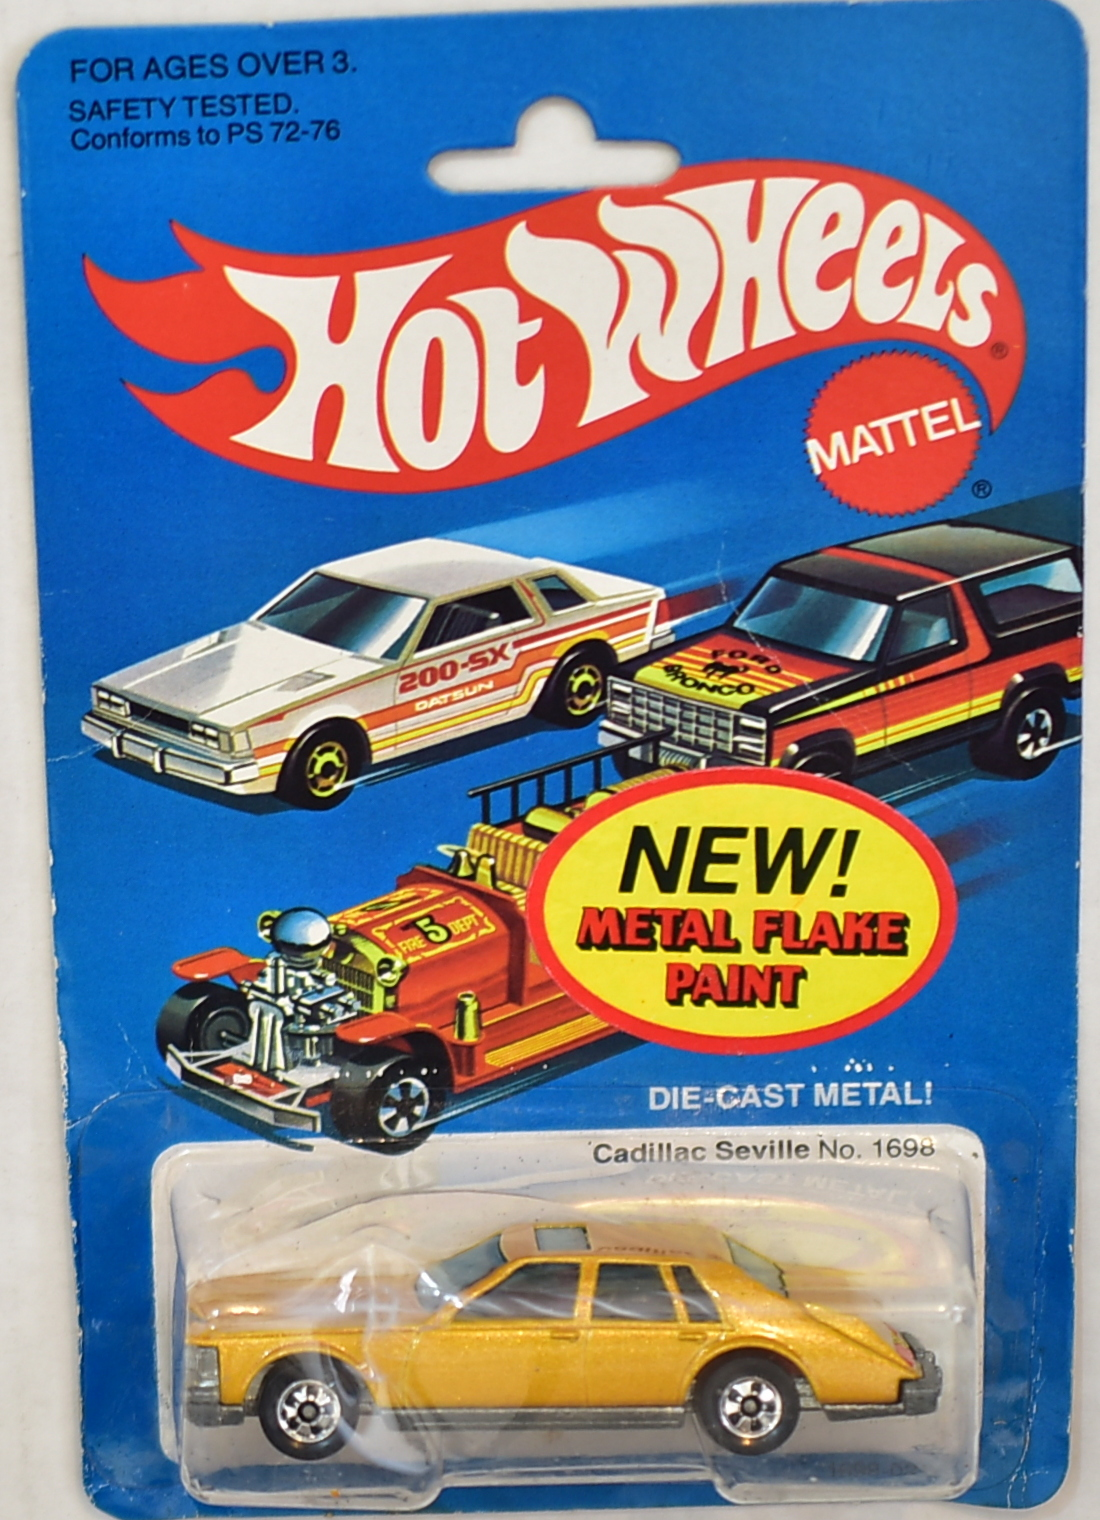 HOT WHEELS 1981 METAL FLAKE PAINT CADILLAC SEVILLE #1698